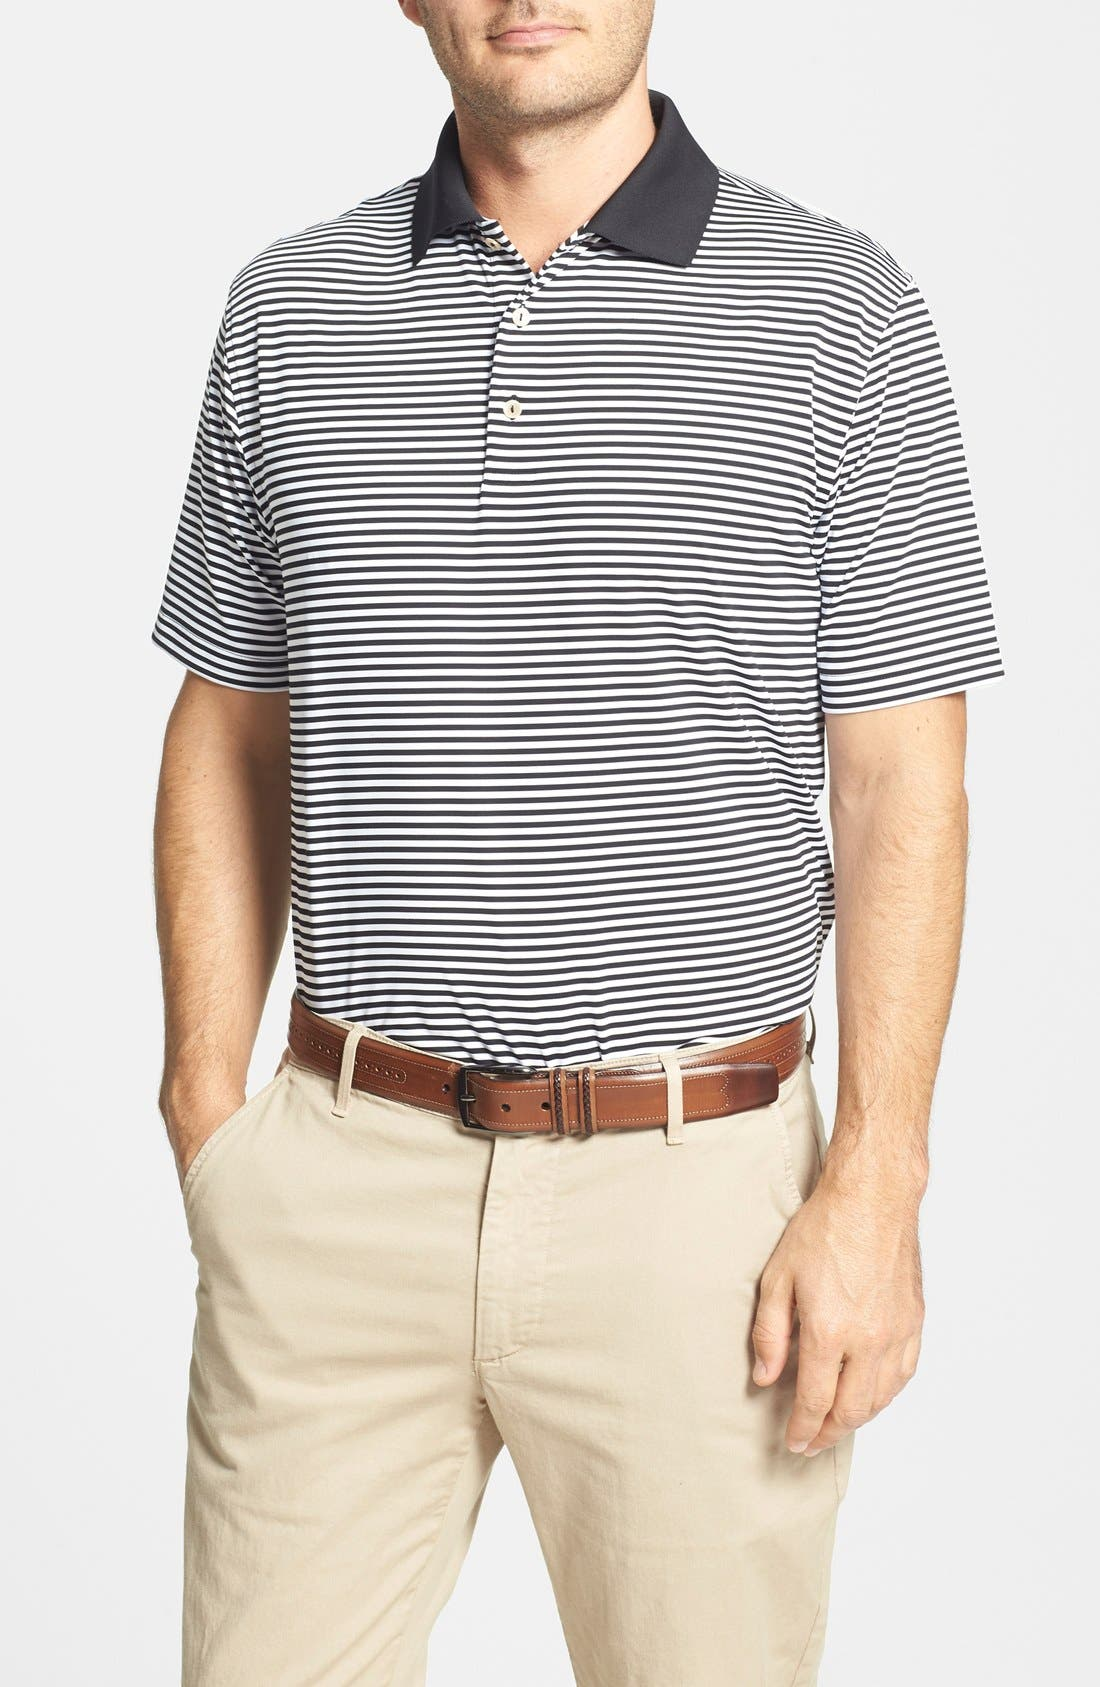 Main Image - Peter Millar 'Competition' Stripe Stretch Microfiber Golf Polo